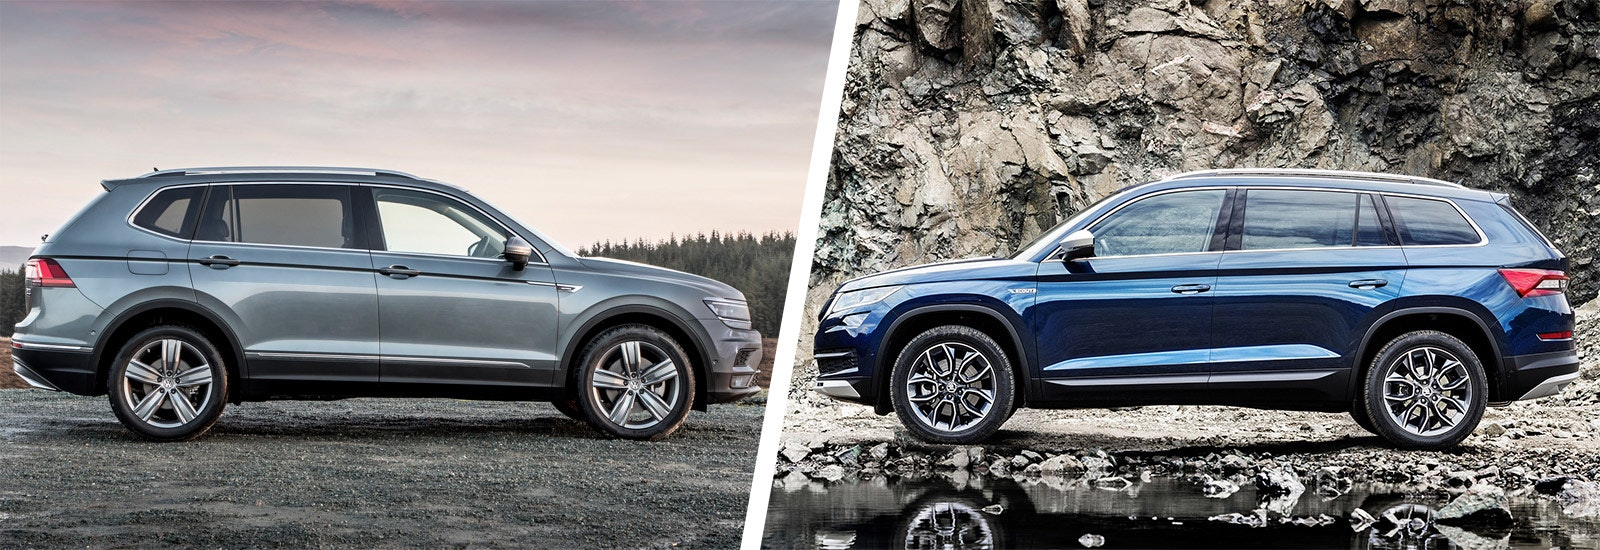 Discovery Sport Land Rover >> VW Tiguan Allspace vs Skoda Kodiaq – which is best? | carwow